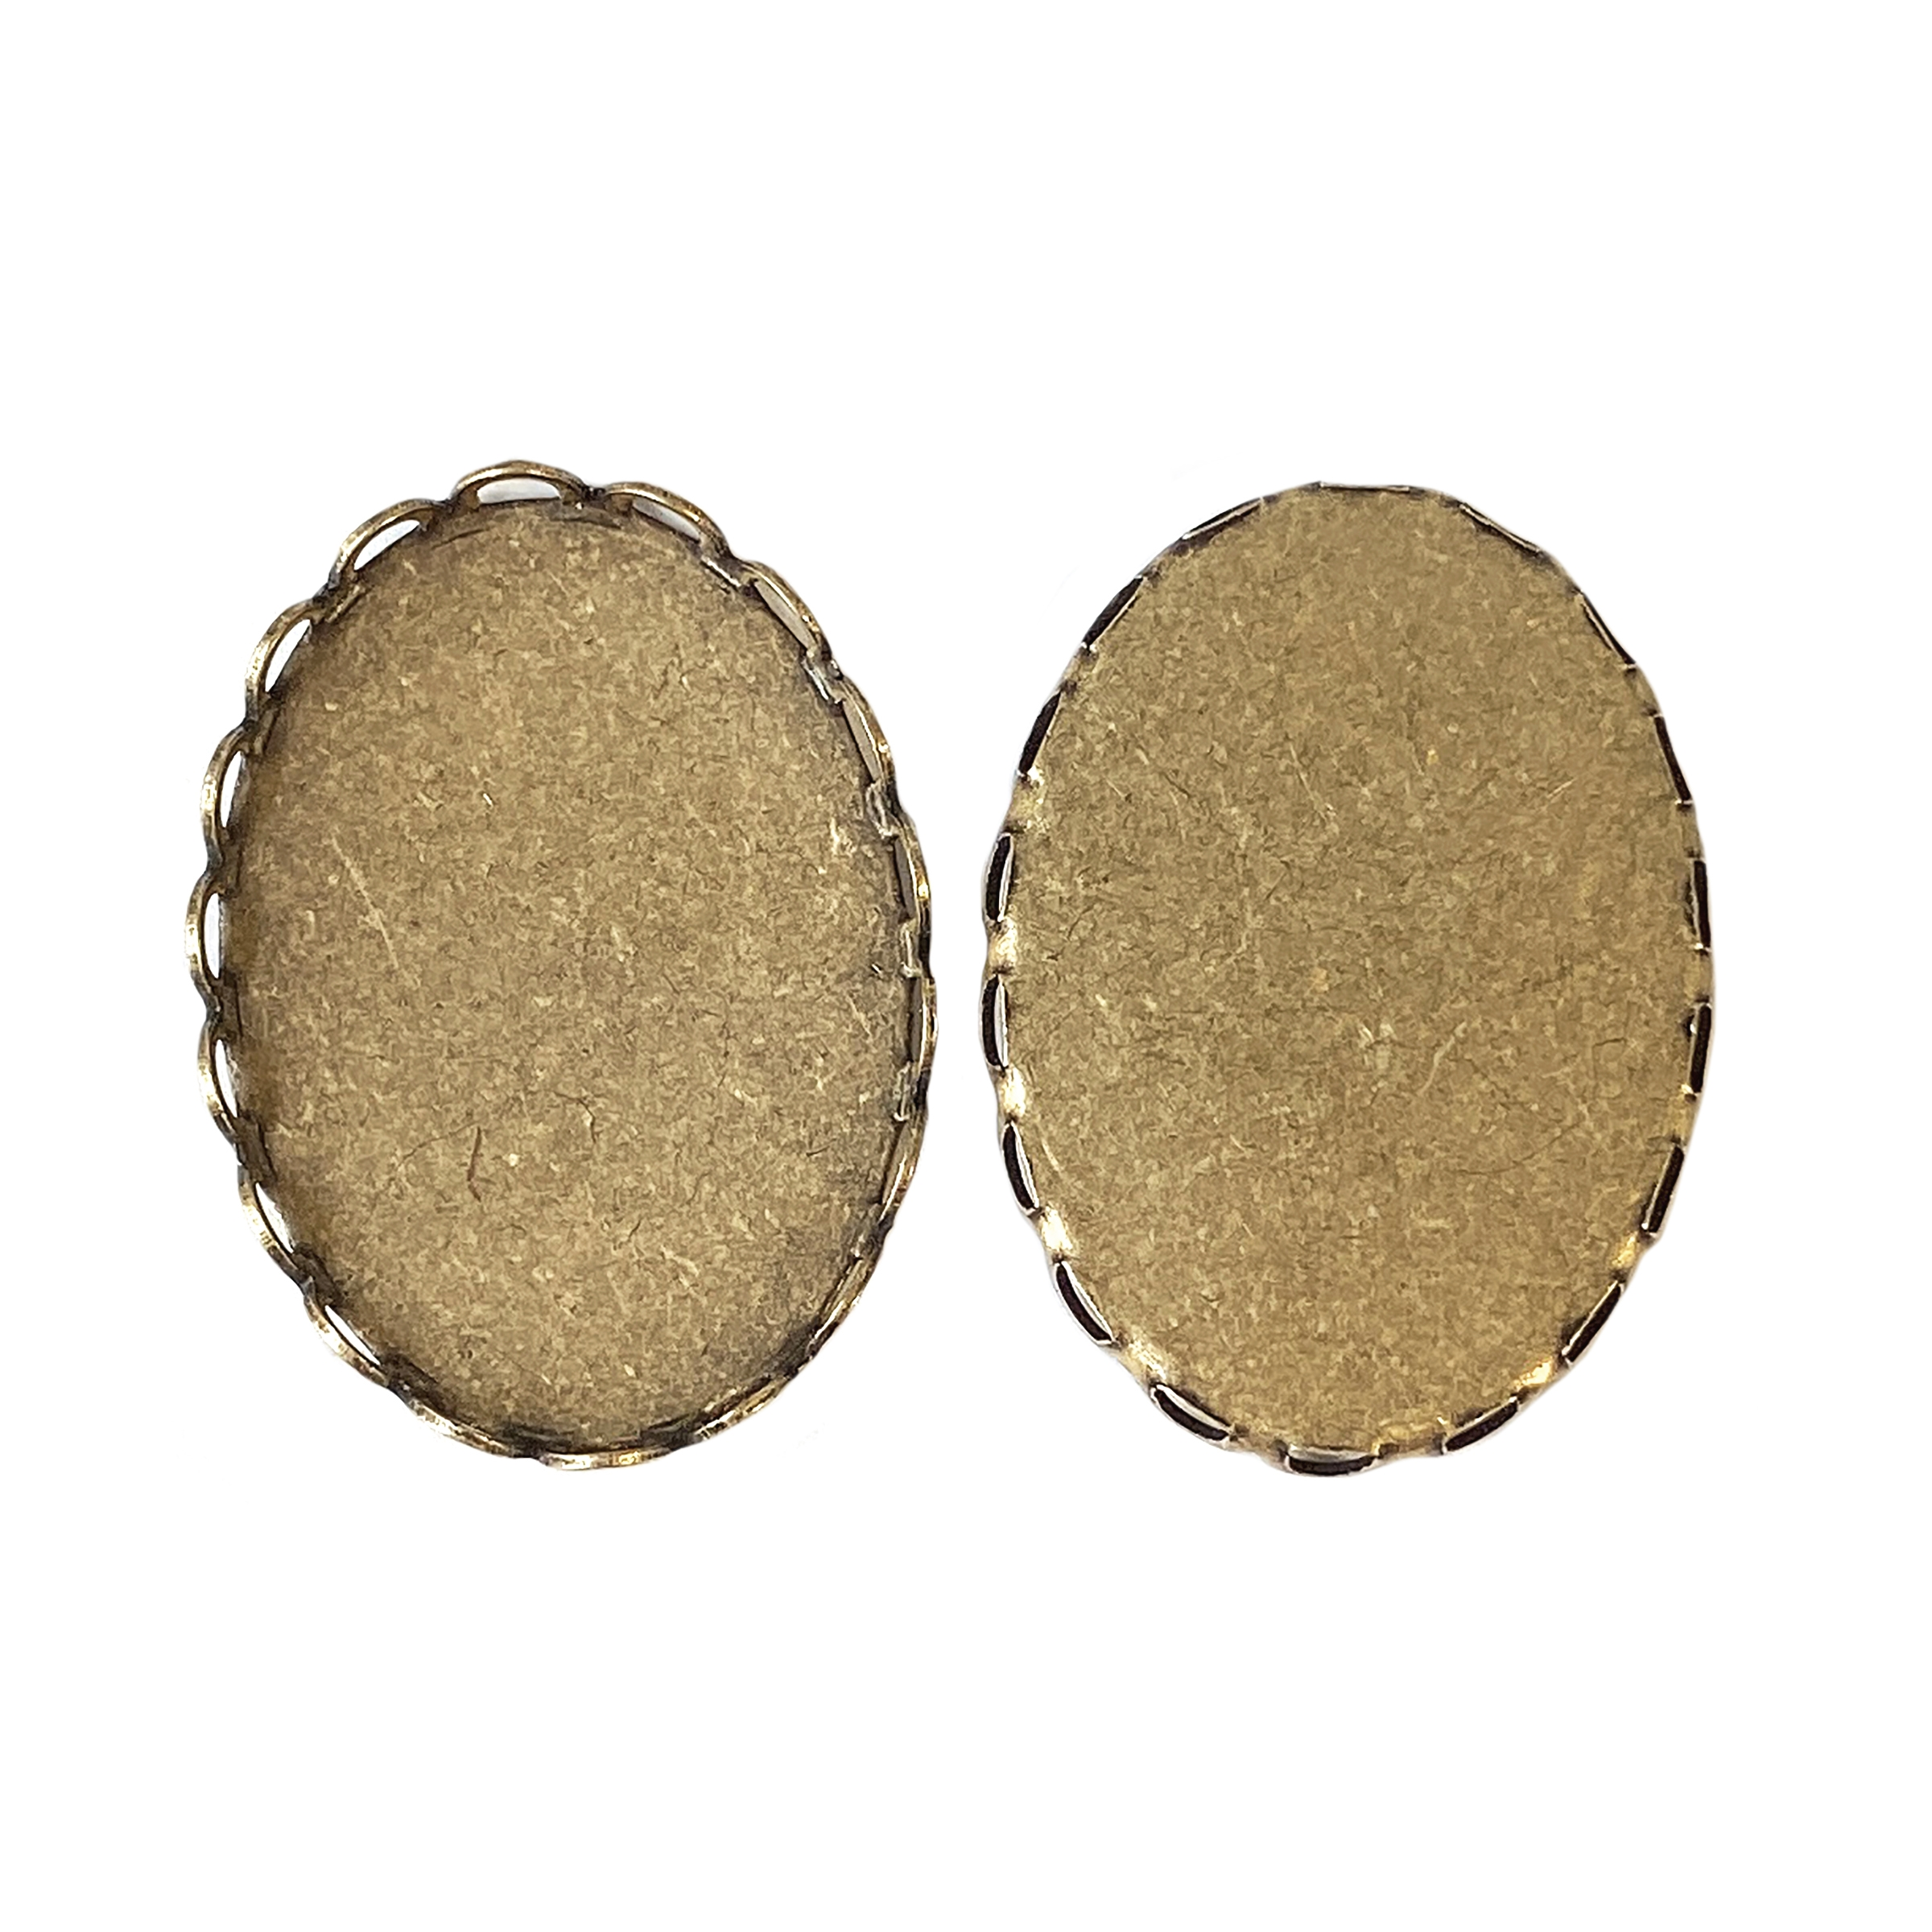 brass ox bezel, oval, 06474, 25x18mm, oval bezel, jewelry supplies, jewelry making, B'sue Boutiques, brass ox, antique brass, oval bezel, lace, lacy bezel, lacy edge, scalloped bezel